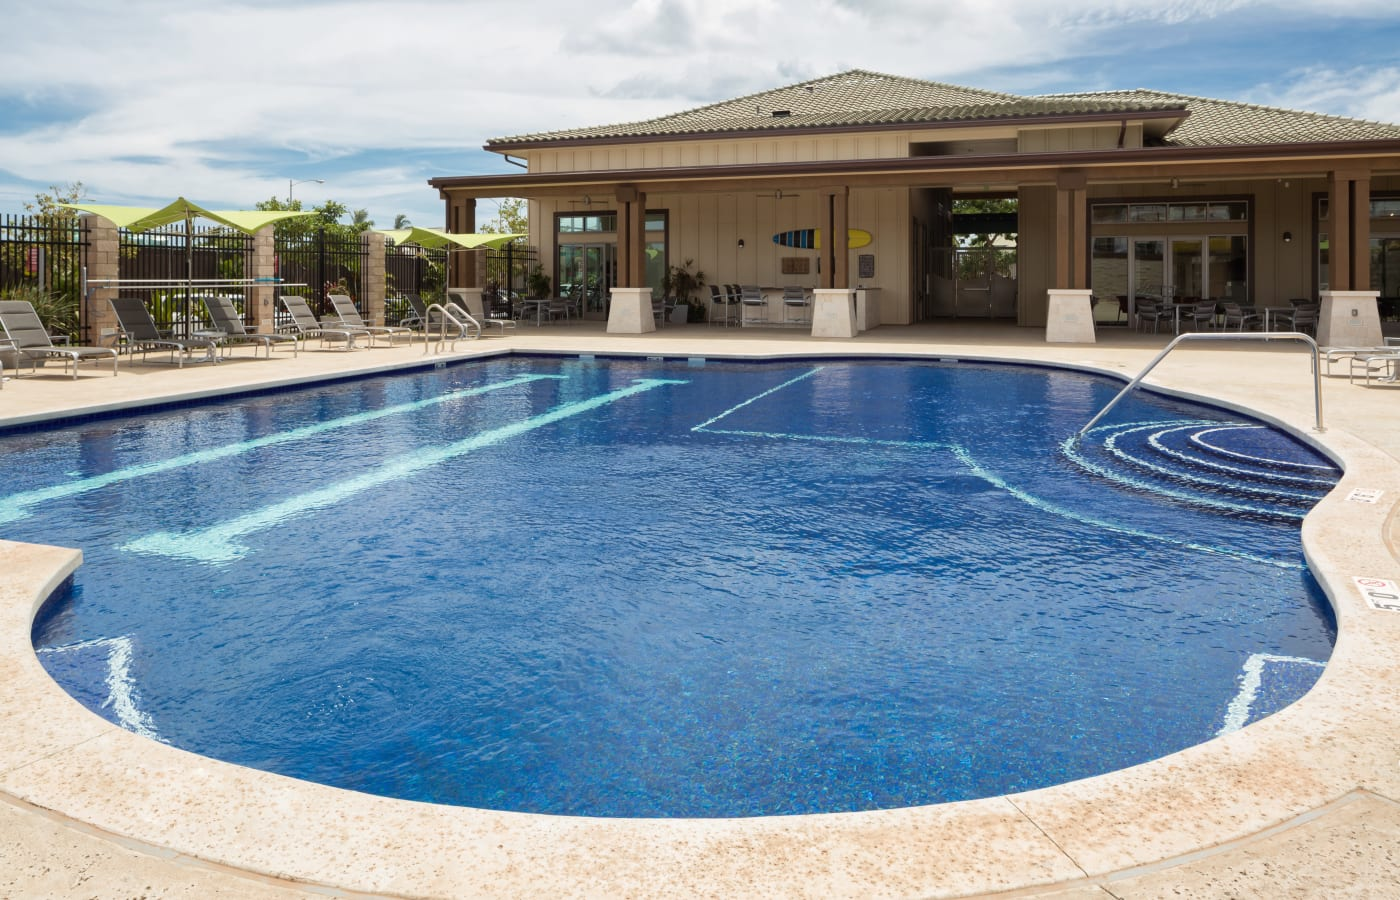 Beautiful swimming pool at Kapolei Lofts in Kapolei, HI